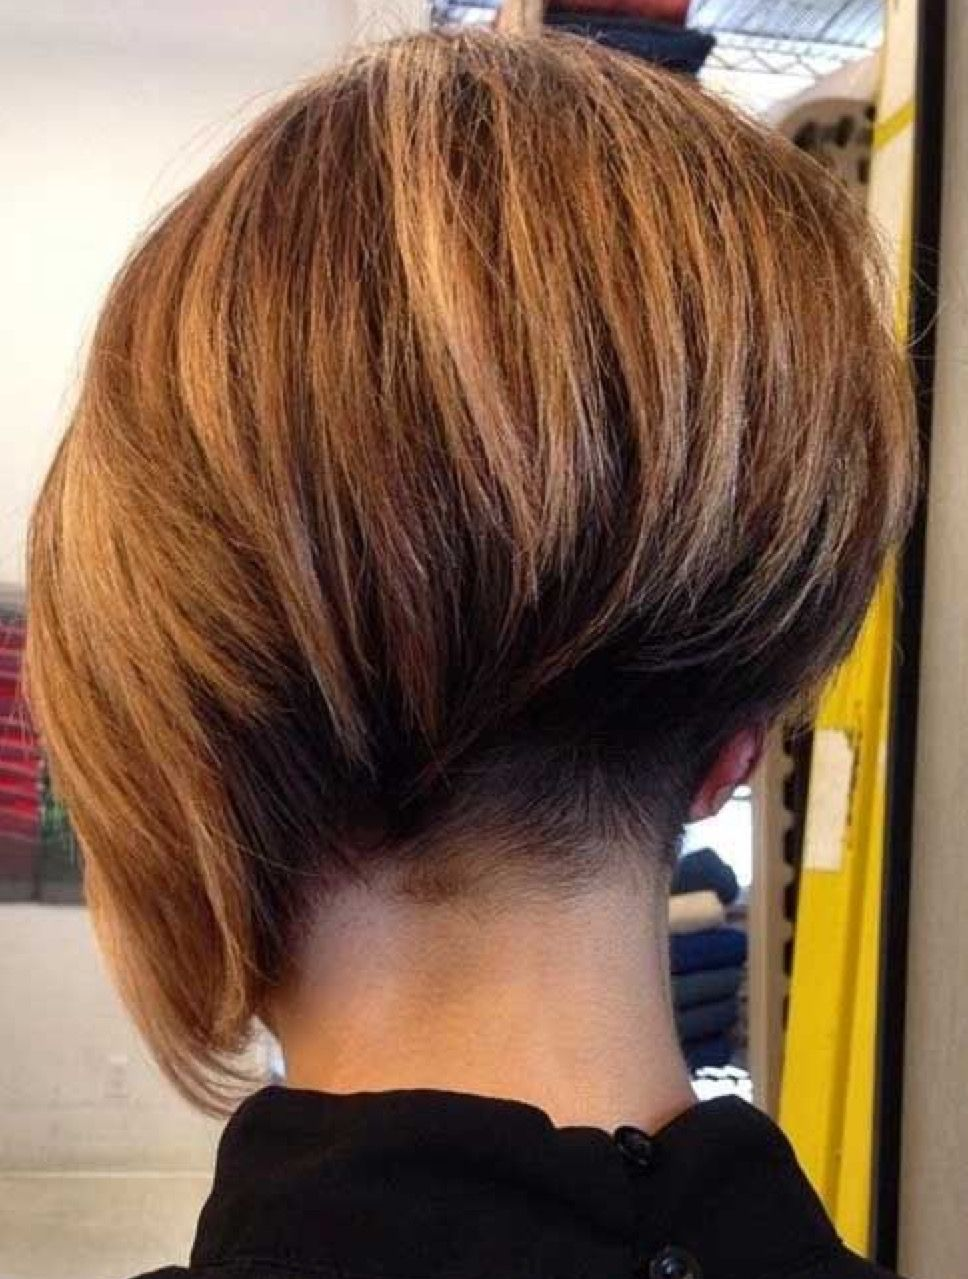 Pin By Marinelle Clavel On Hair Pinterest Bobs Hair Style And